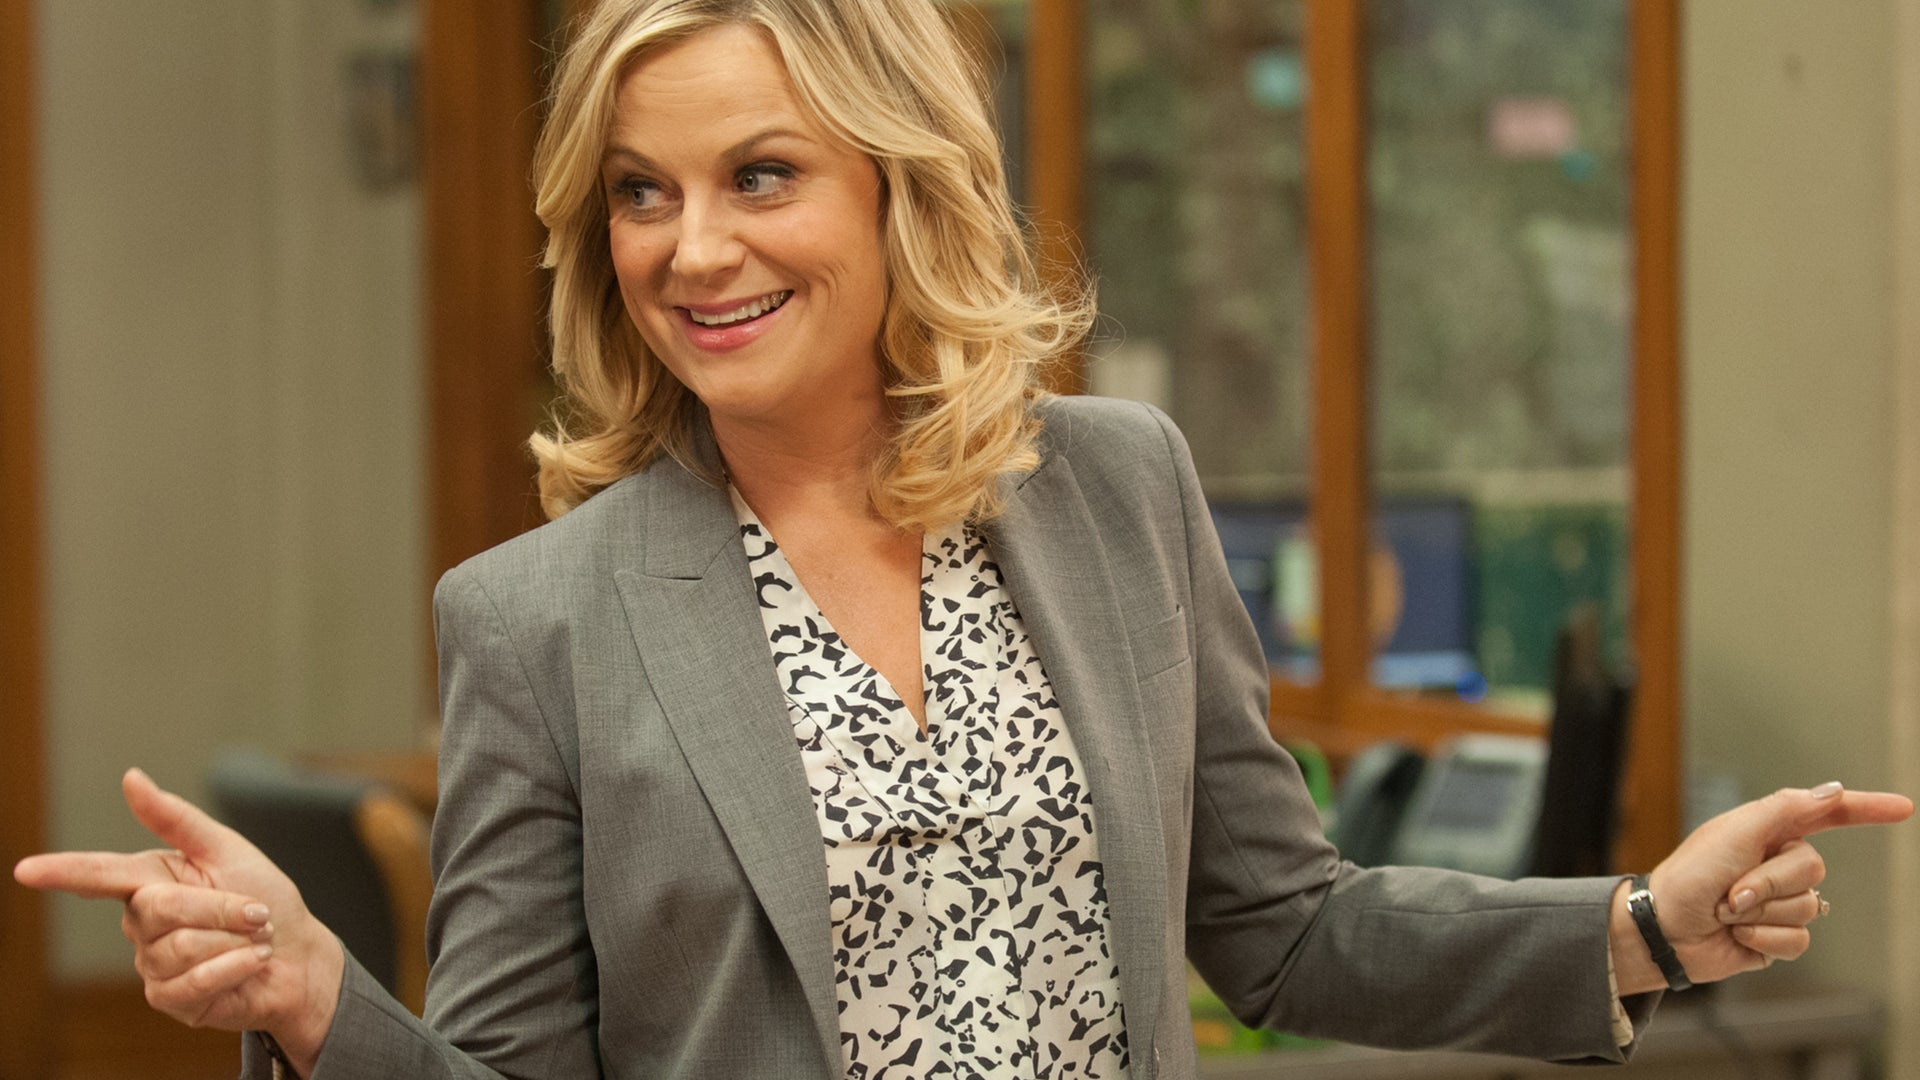 Amy Poeher, Parks and Recreation